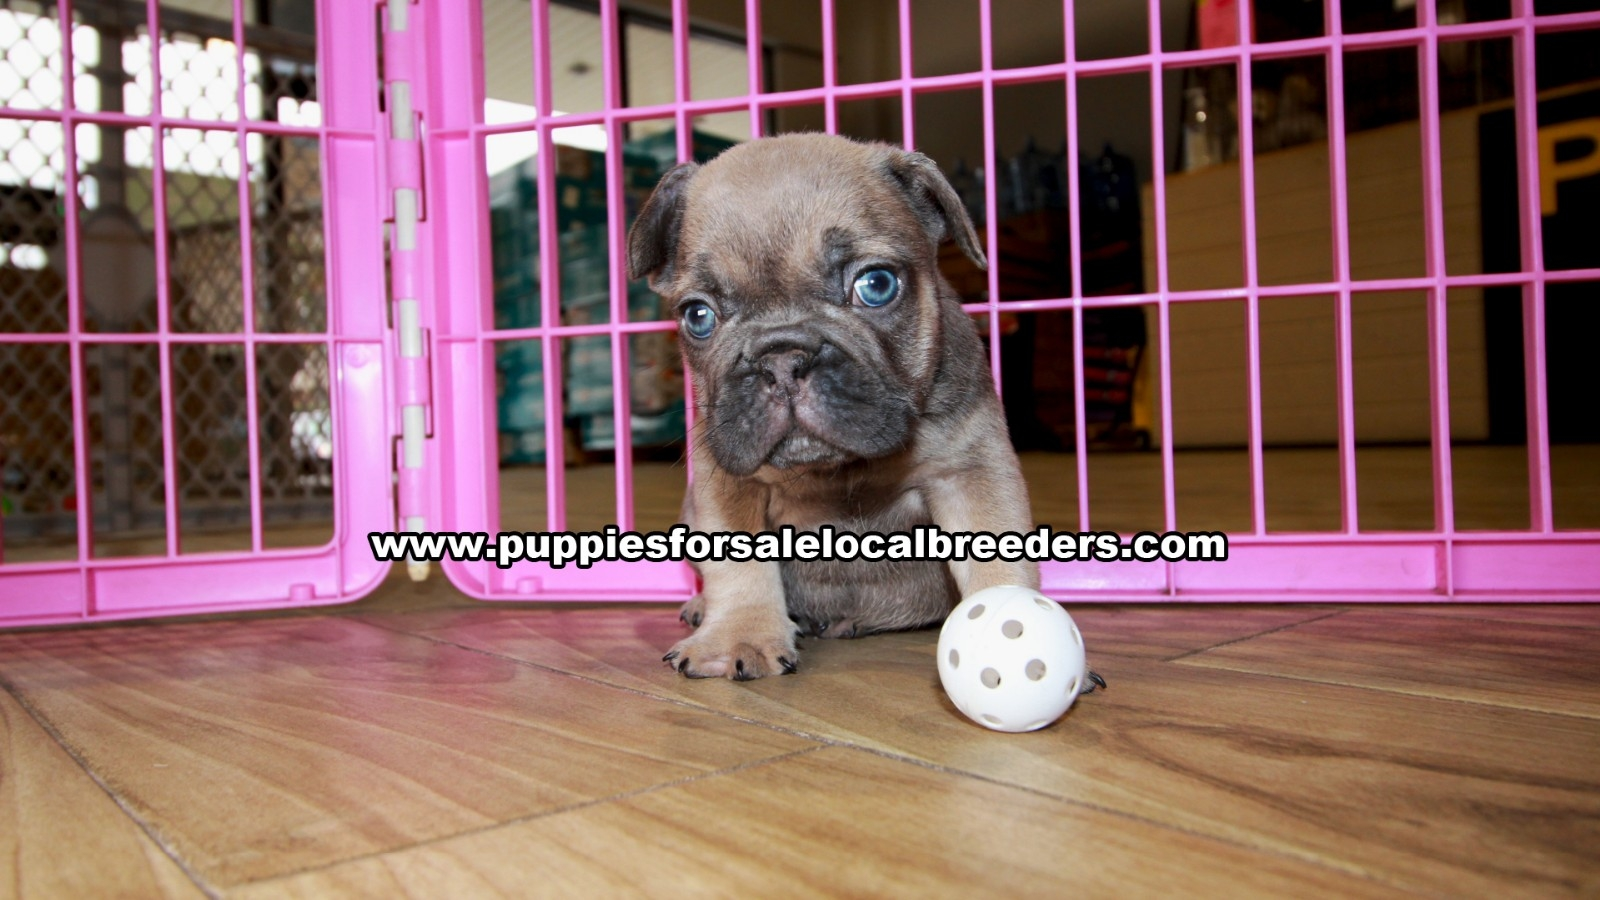 Lilac French Bulldog, Puppies For Sale In Georgia, Local Breeders, Near Atlanta, Ga